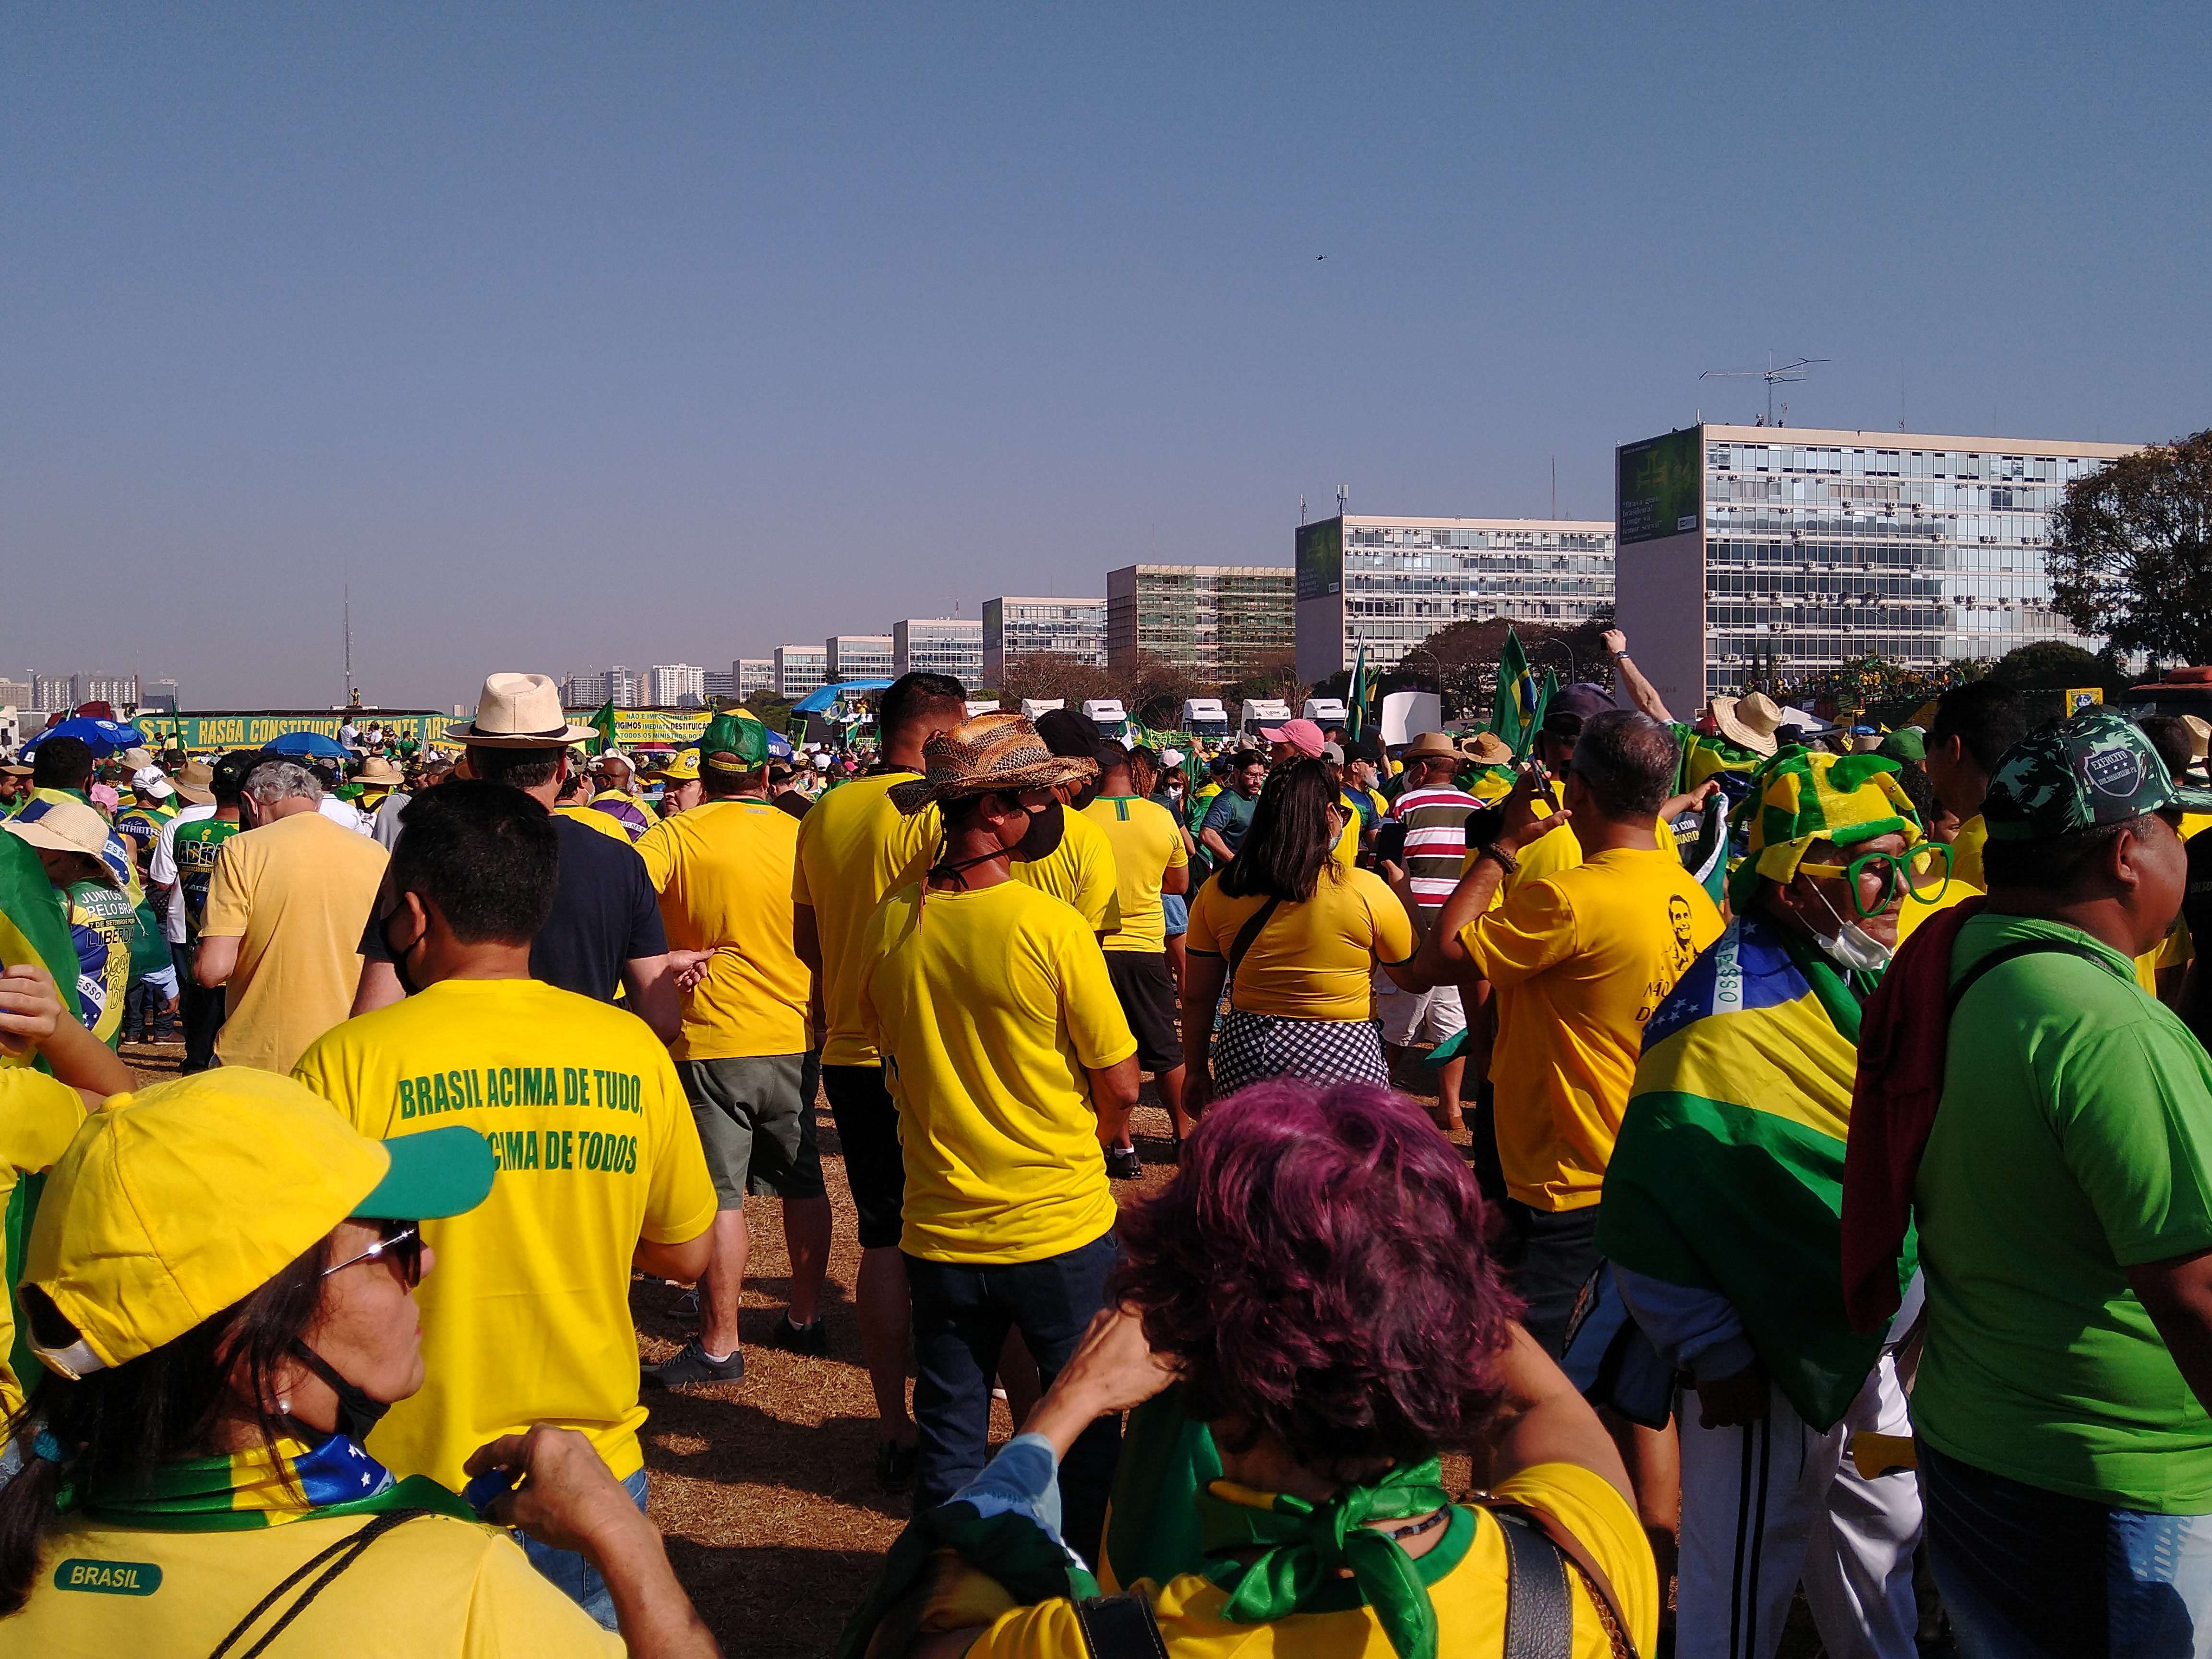 September 7th, the View from Brasília